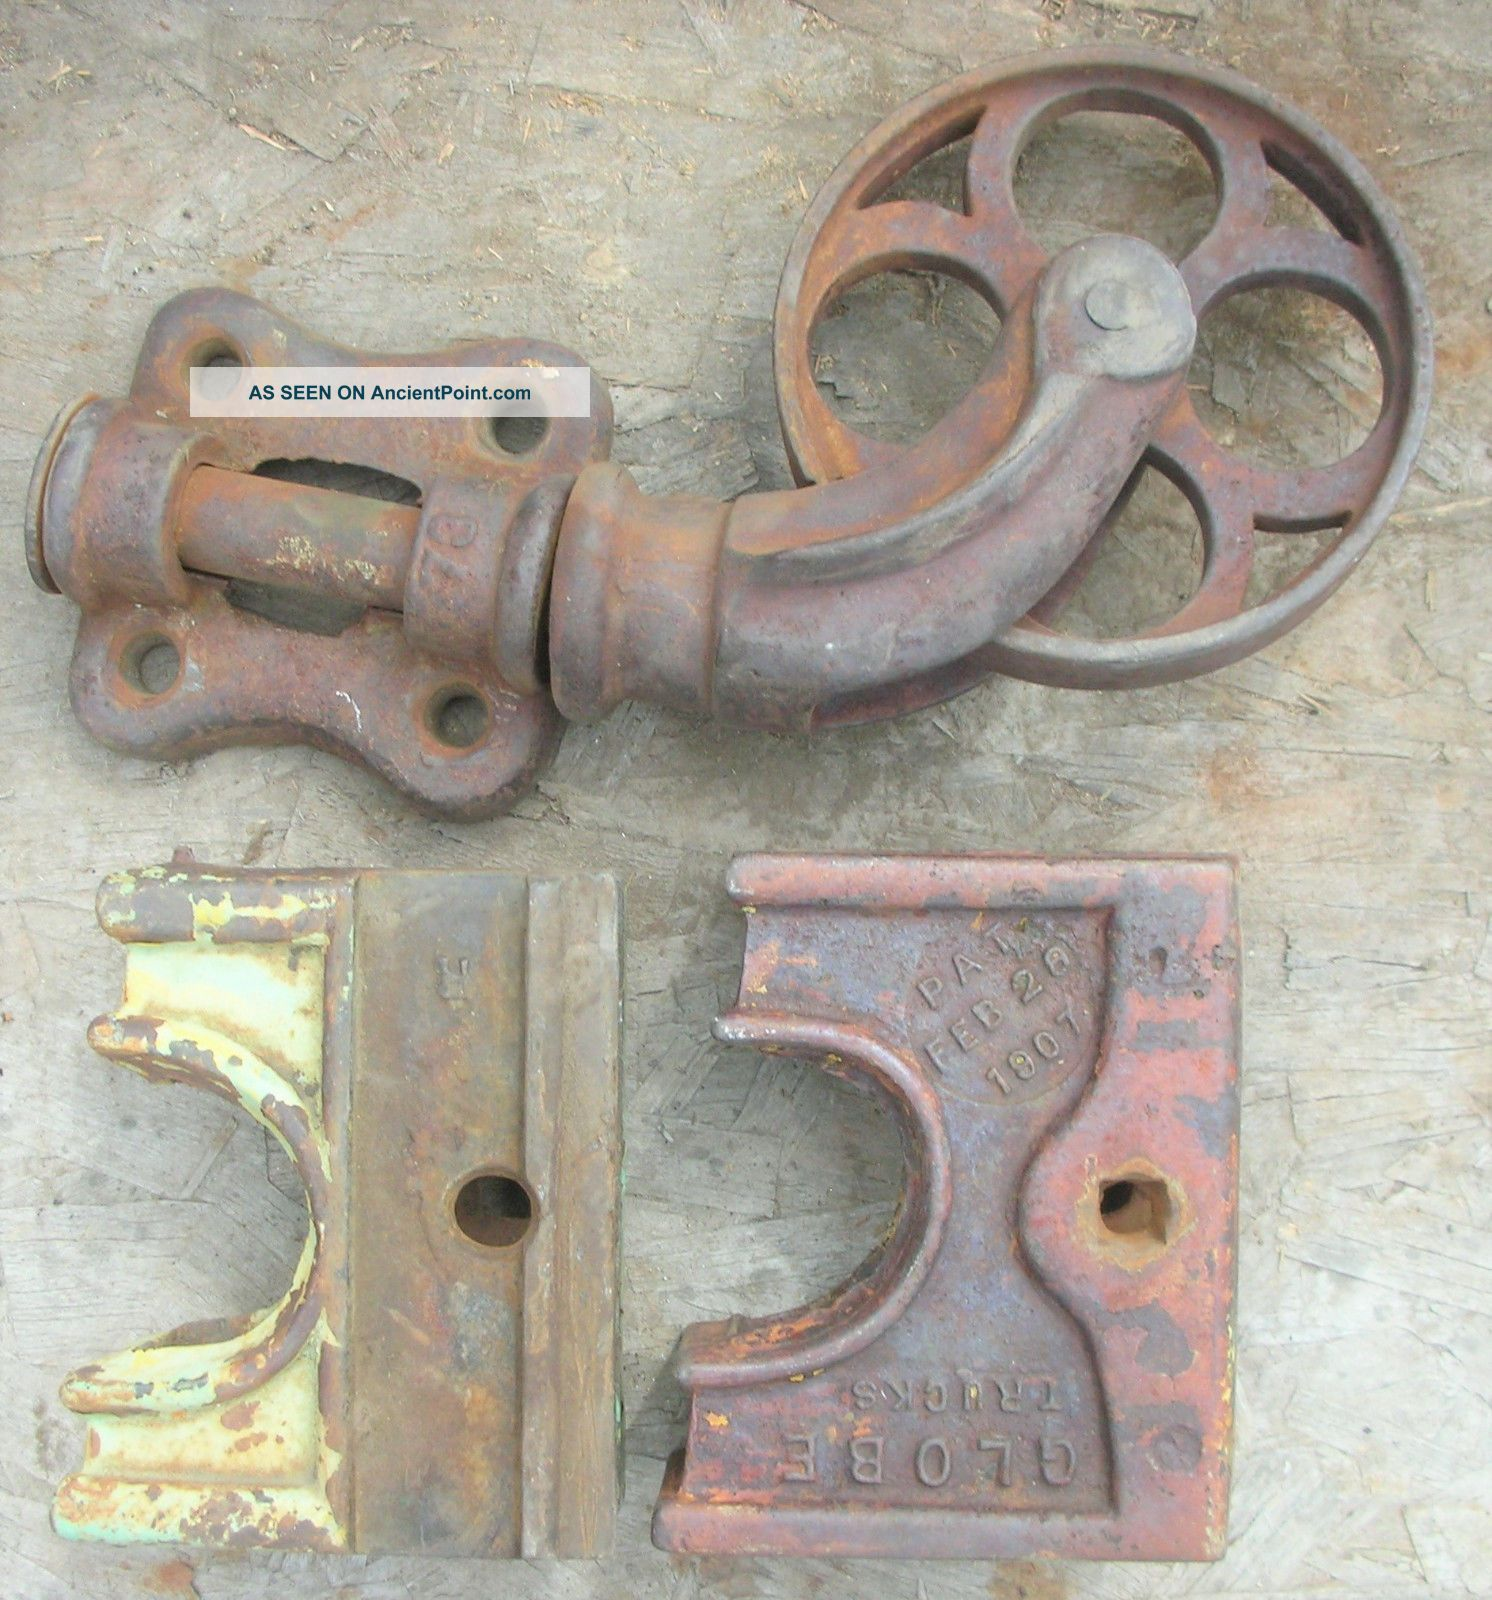 Heavy Vtg Industrial Railroad Cart Swivel Caster Wheels & 2 Corner Brackets Iron Other Mercantile Antiques photo